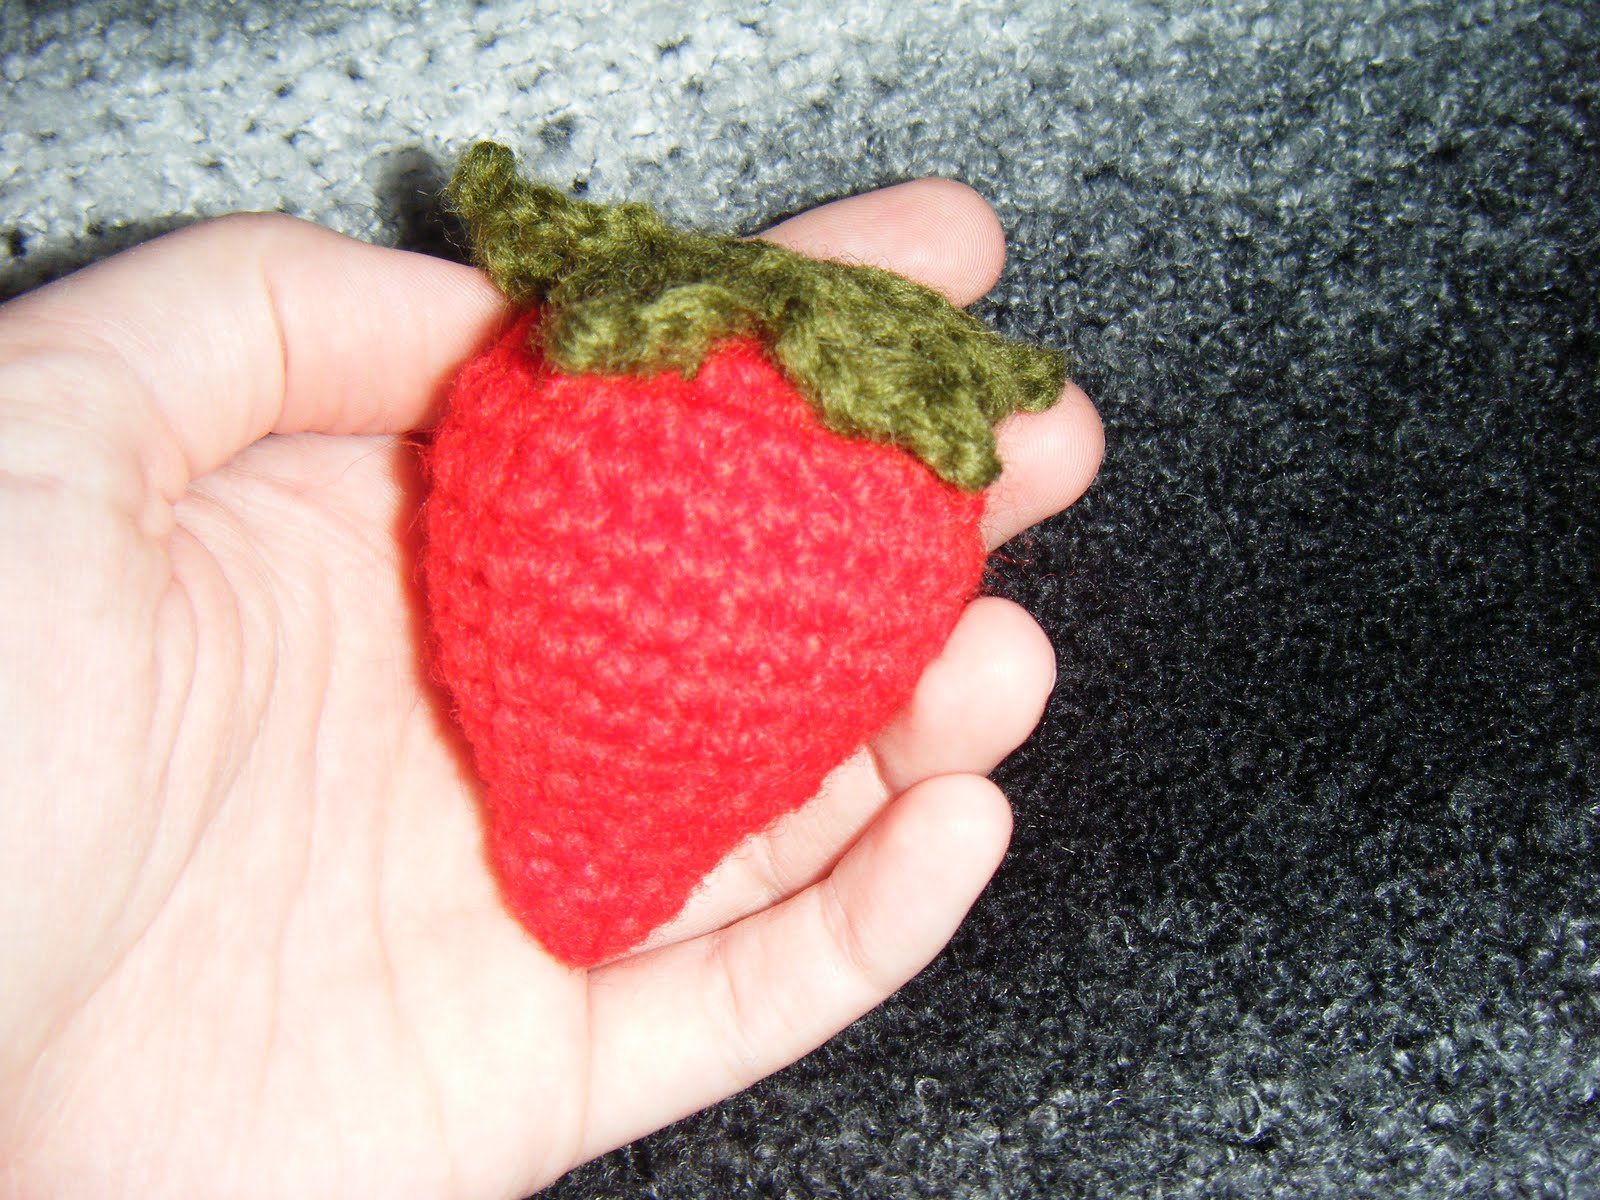 Strawberry Leaf Knitting Pattern : Free craft patterns!: Crocheted strawberry